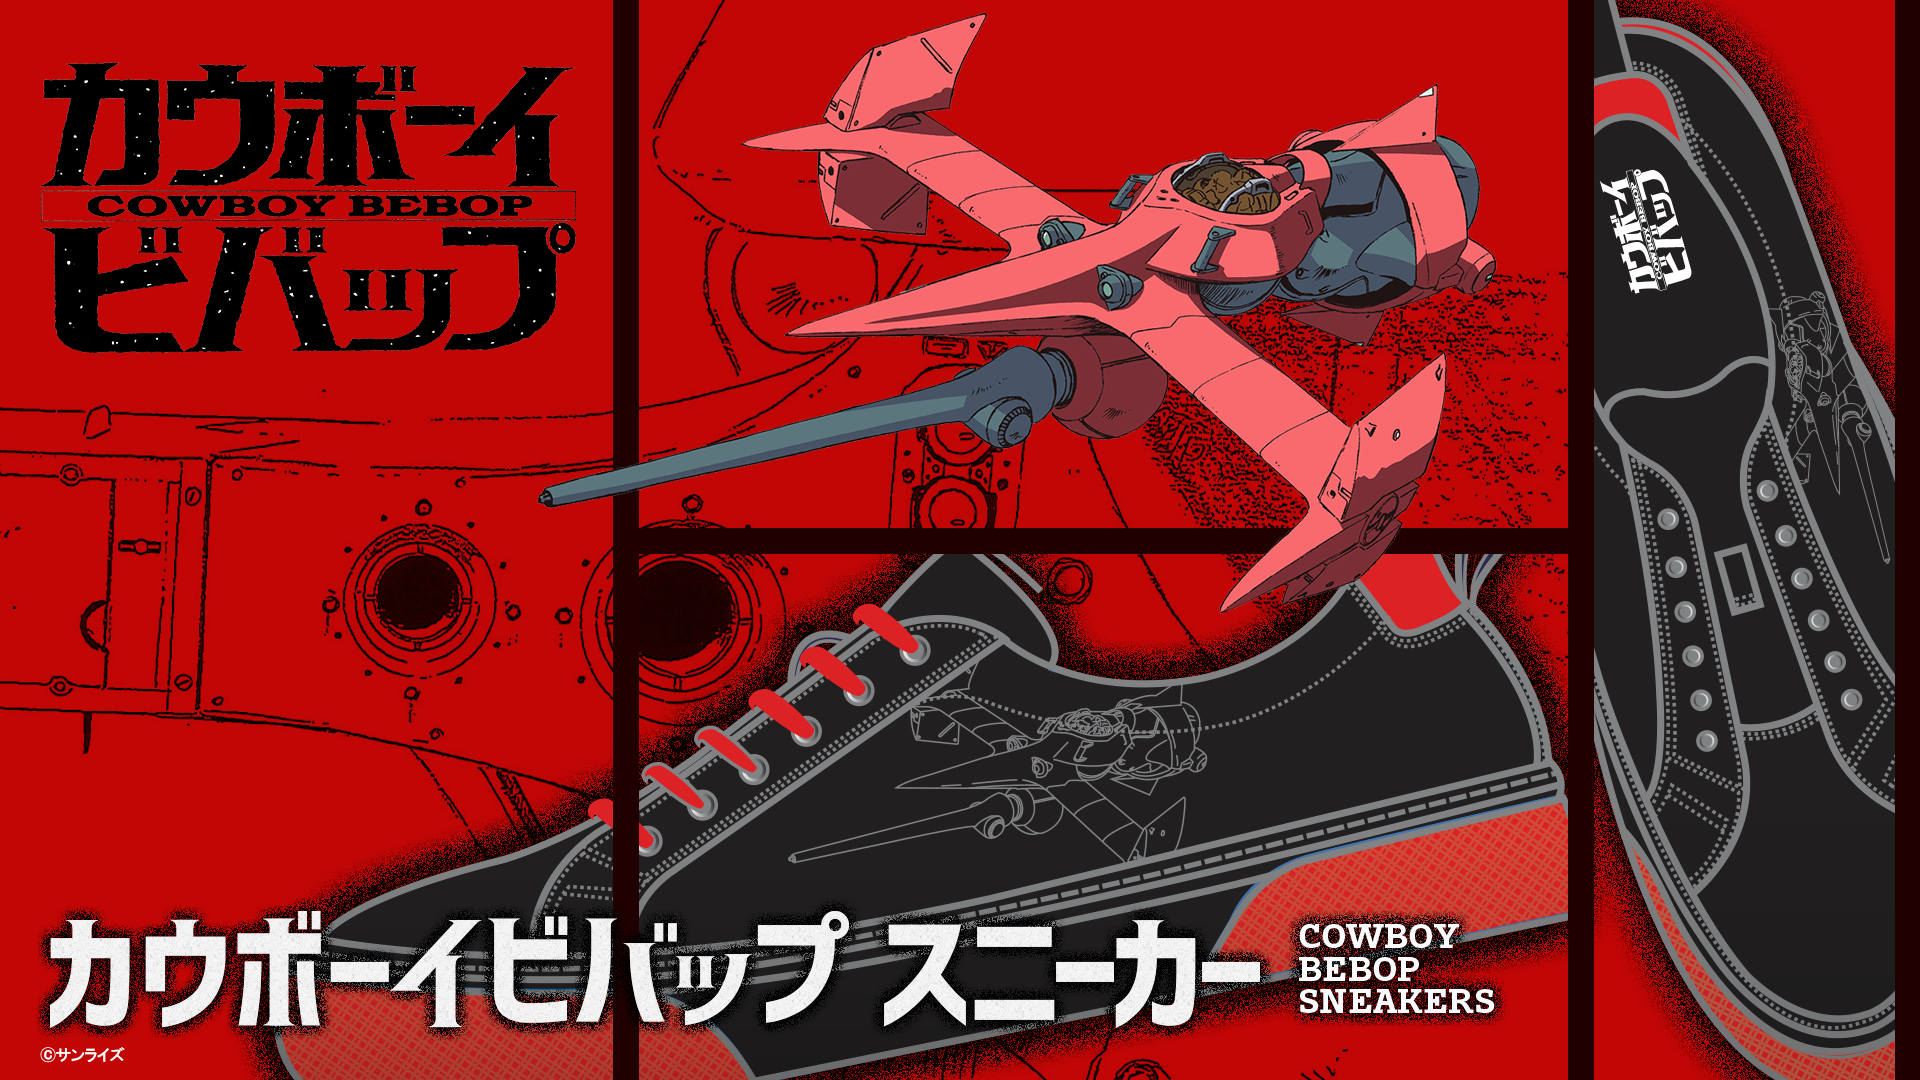 cowboybebop_sneakers_main